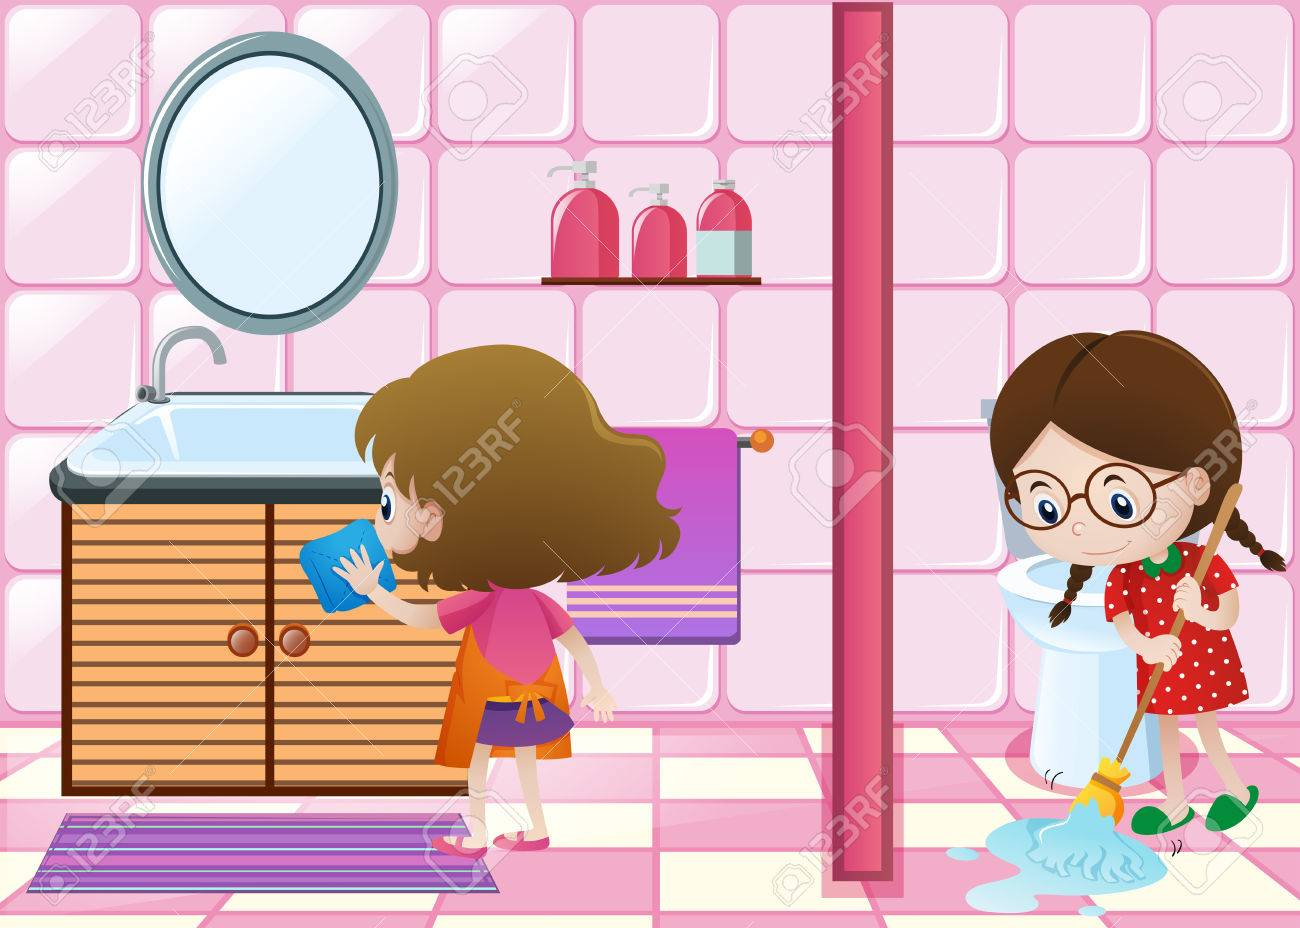 Two Kids Cleaning Bathroom Together Illustration Stock Vector